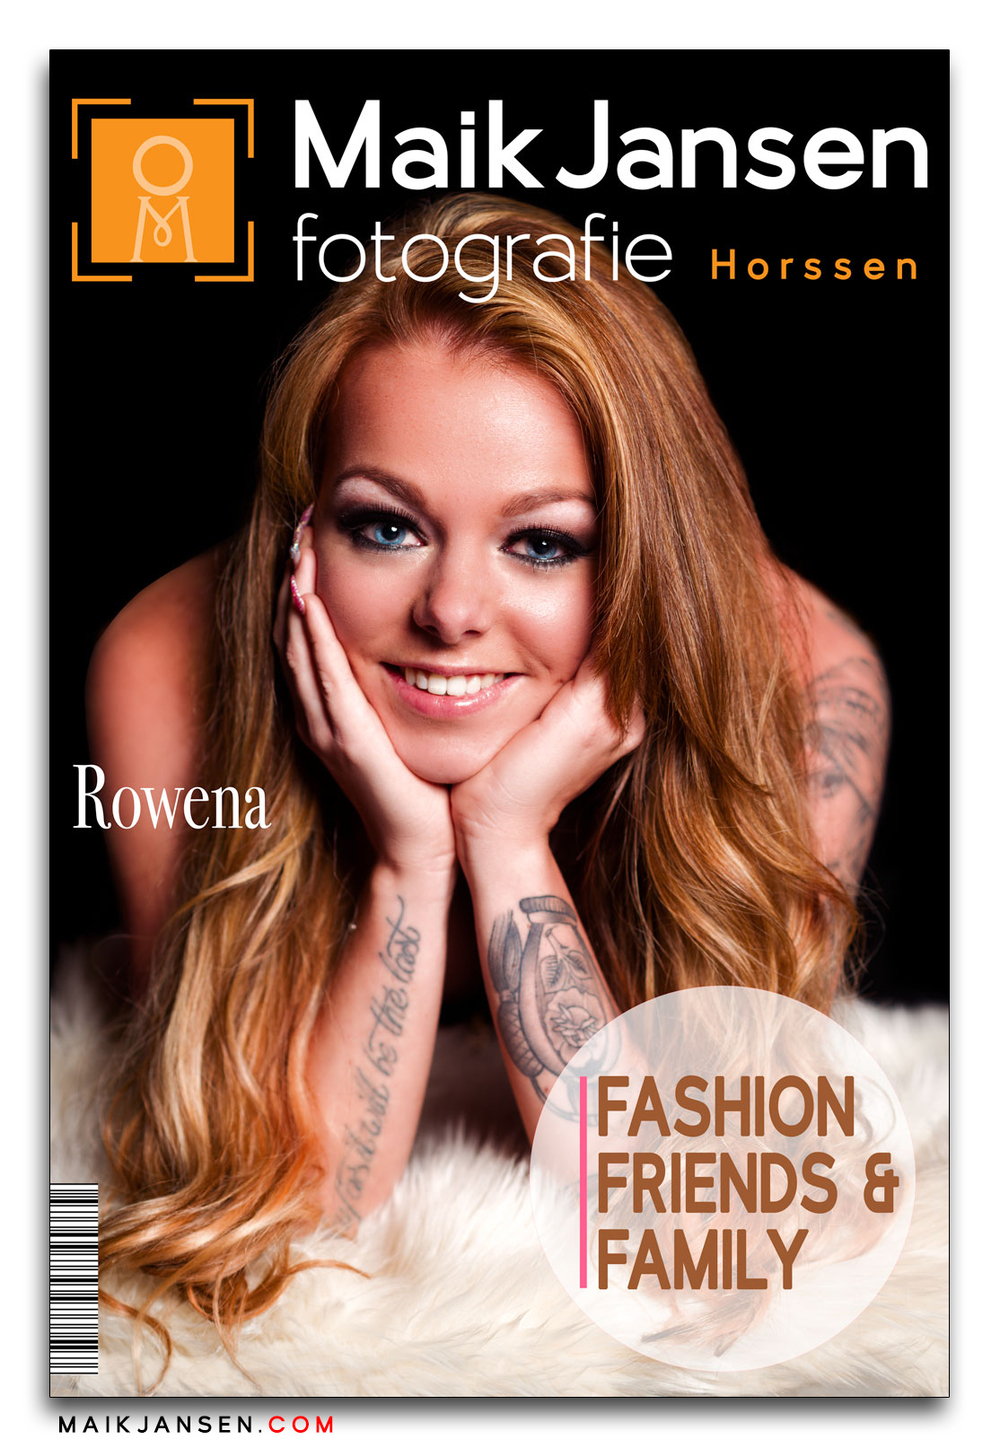 Cover of a Fashion Magazine